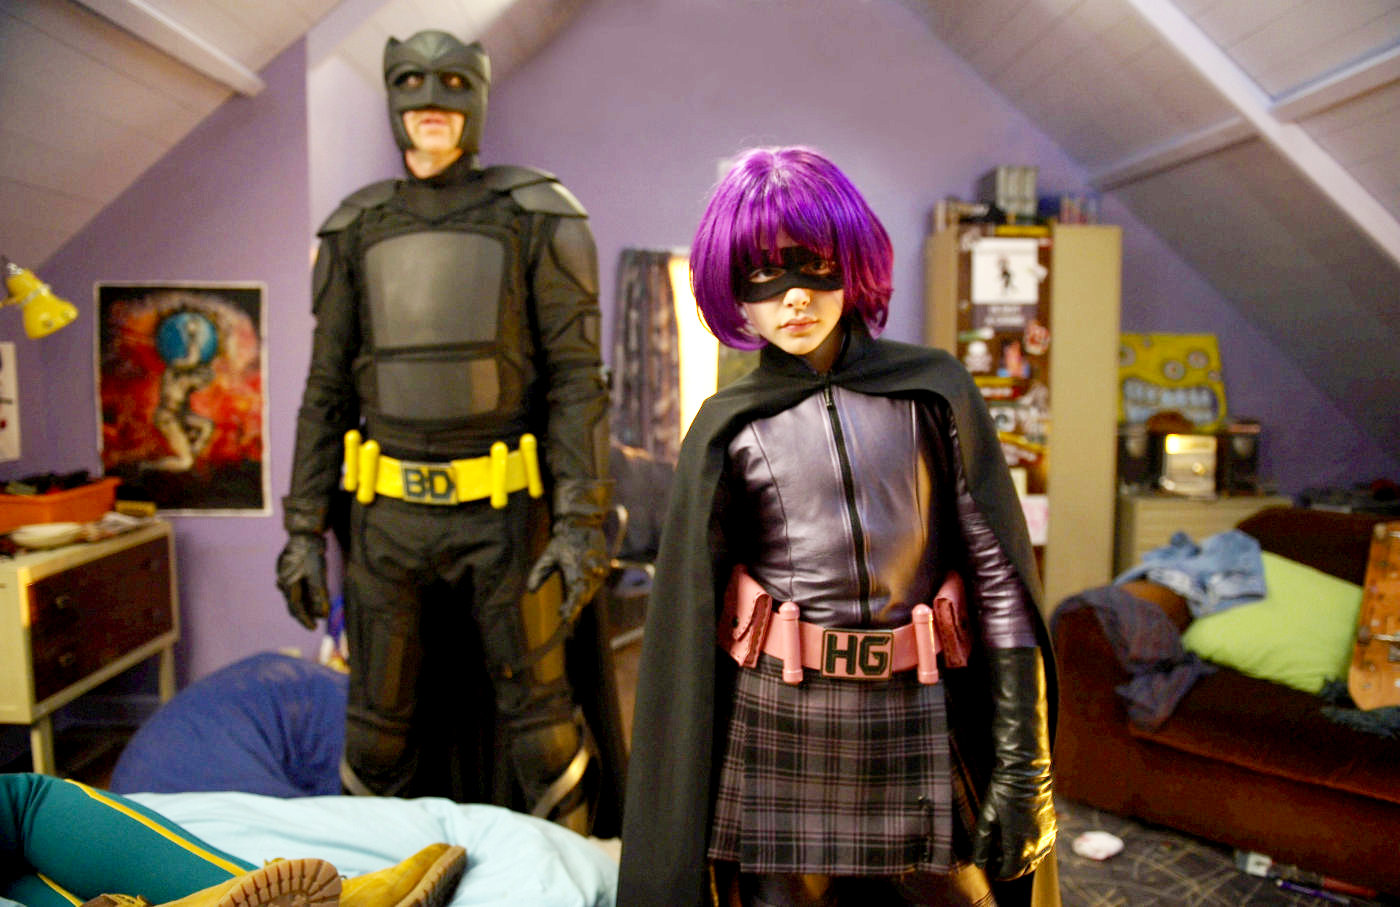 Nicolas Cage and Chloe Grace Moretz breathed life into the characters of Big Daddy and Hit Girl.